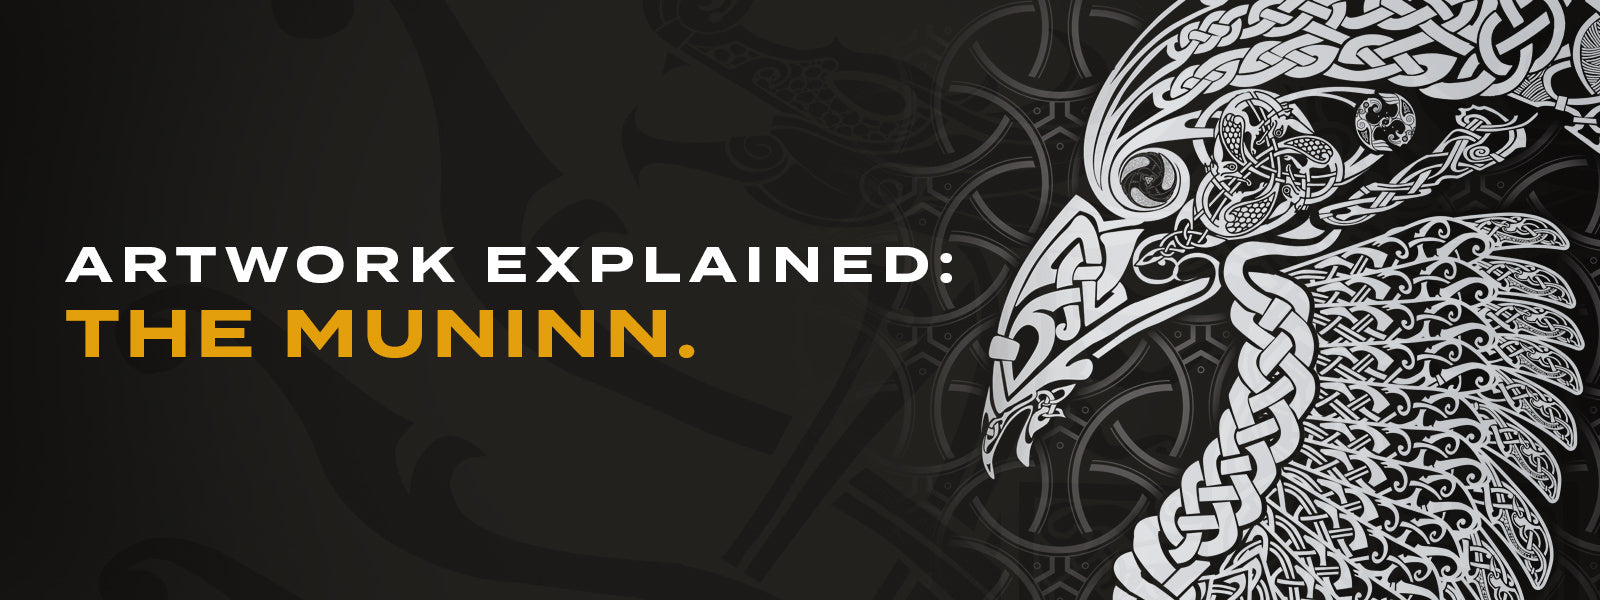 Artwork Explained: The Muninn